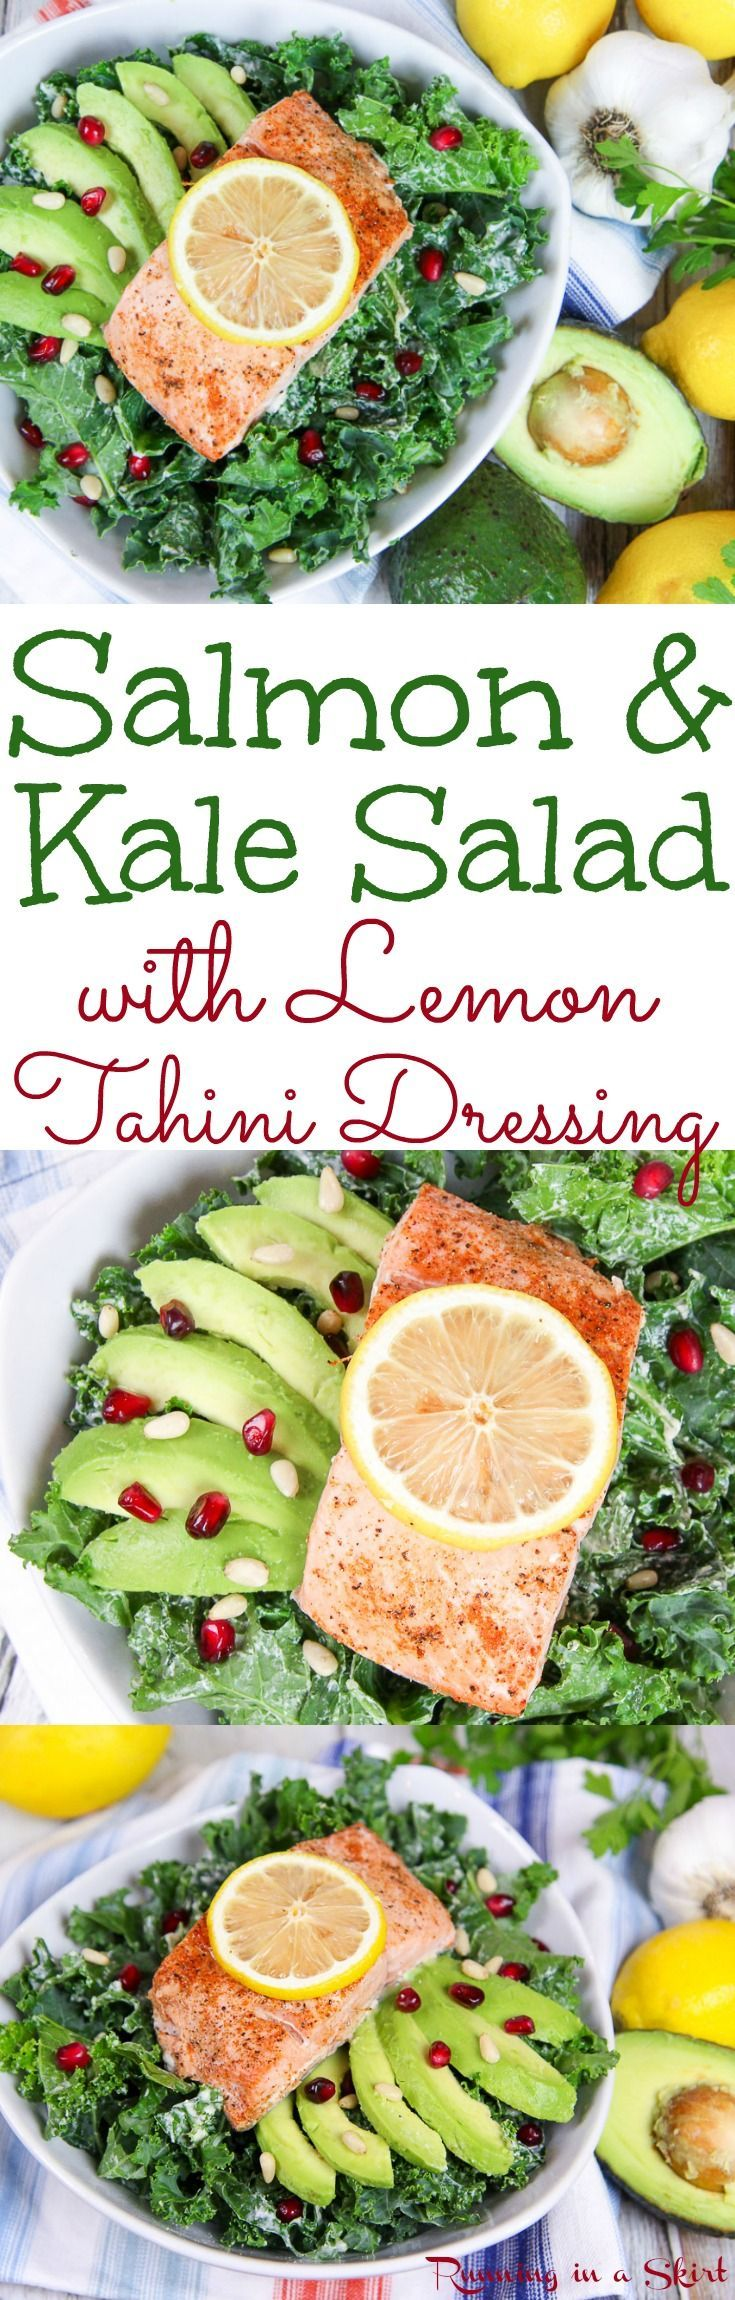 Healthy Salmon Kale Salad recipe with Lemon Tahini Dressing. Perfect for healthy, clean eating meals and dinners. Topped with avocado, pine nuts and pomegranate. Low carb, gluten free, pescatarian food / Running in a Skirt